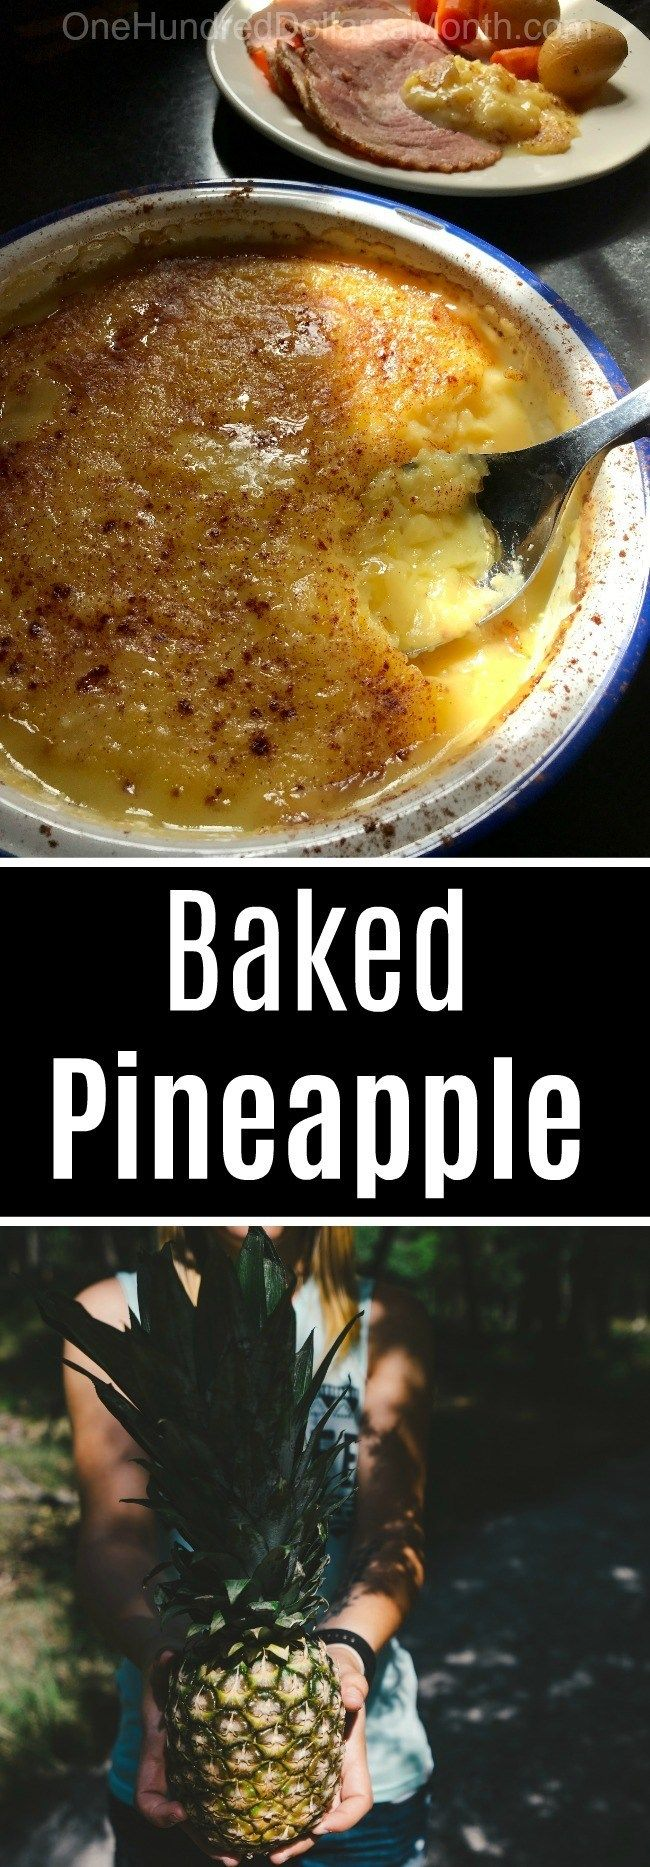 Baked Pineapple Custard Recipe #chickensidedishes